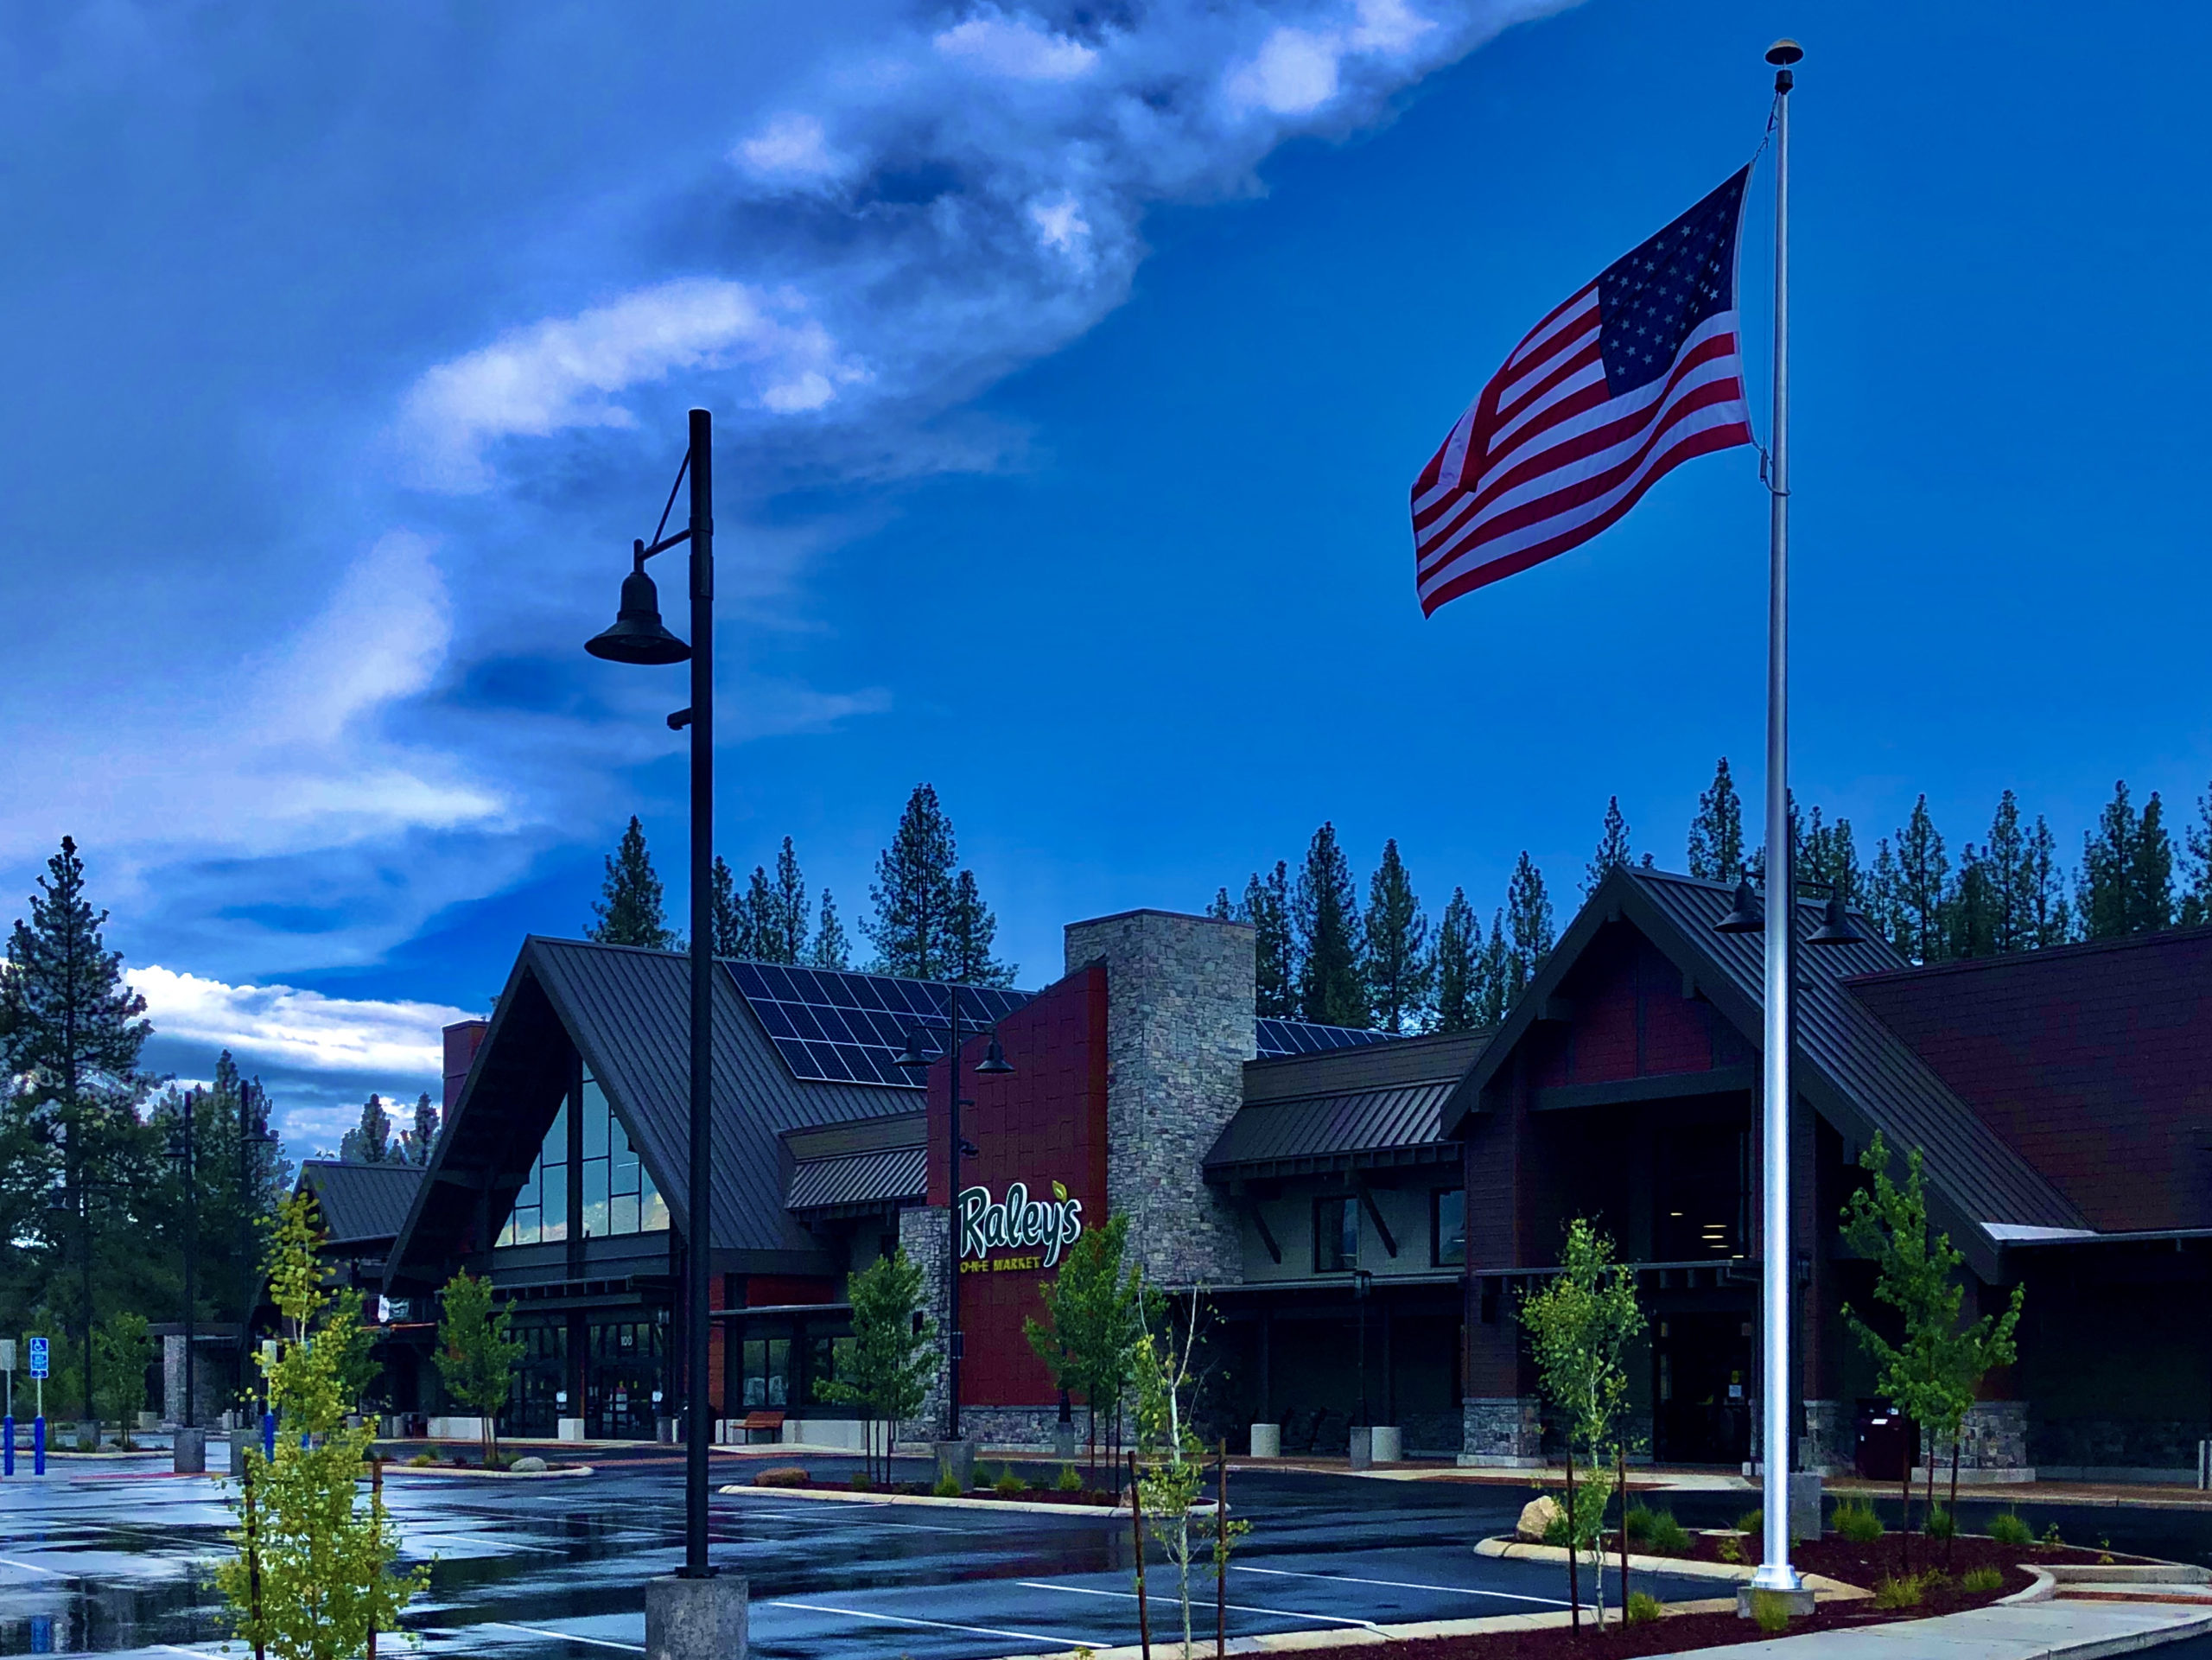 Raley's food retail innovation in Truckee, CA